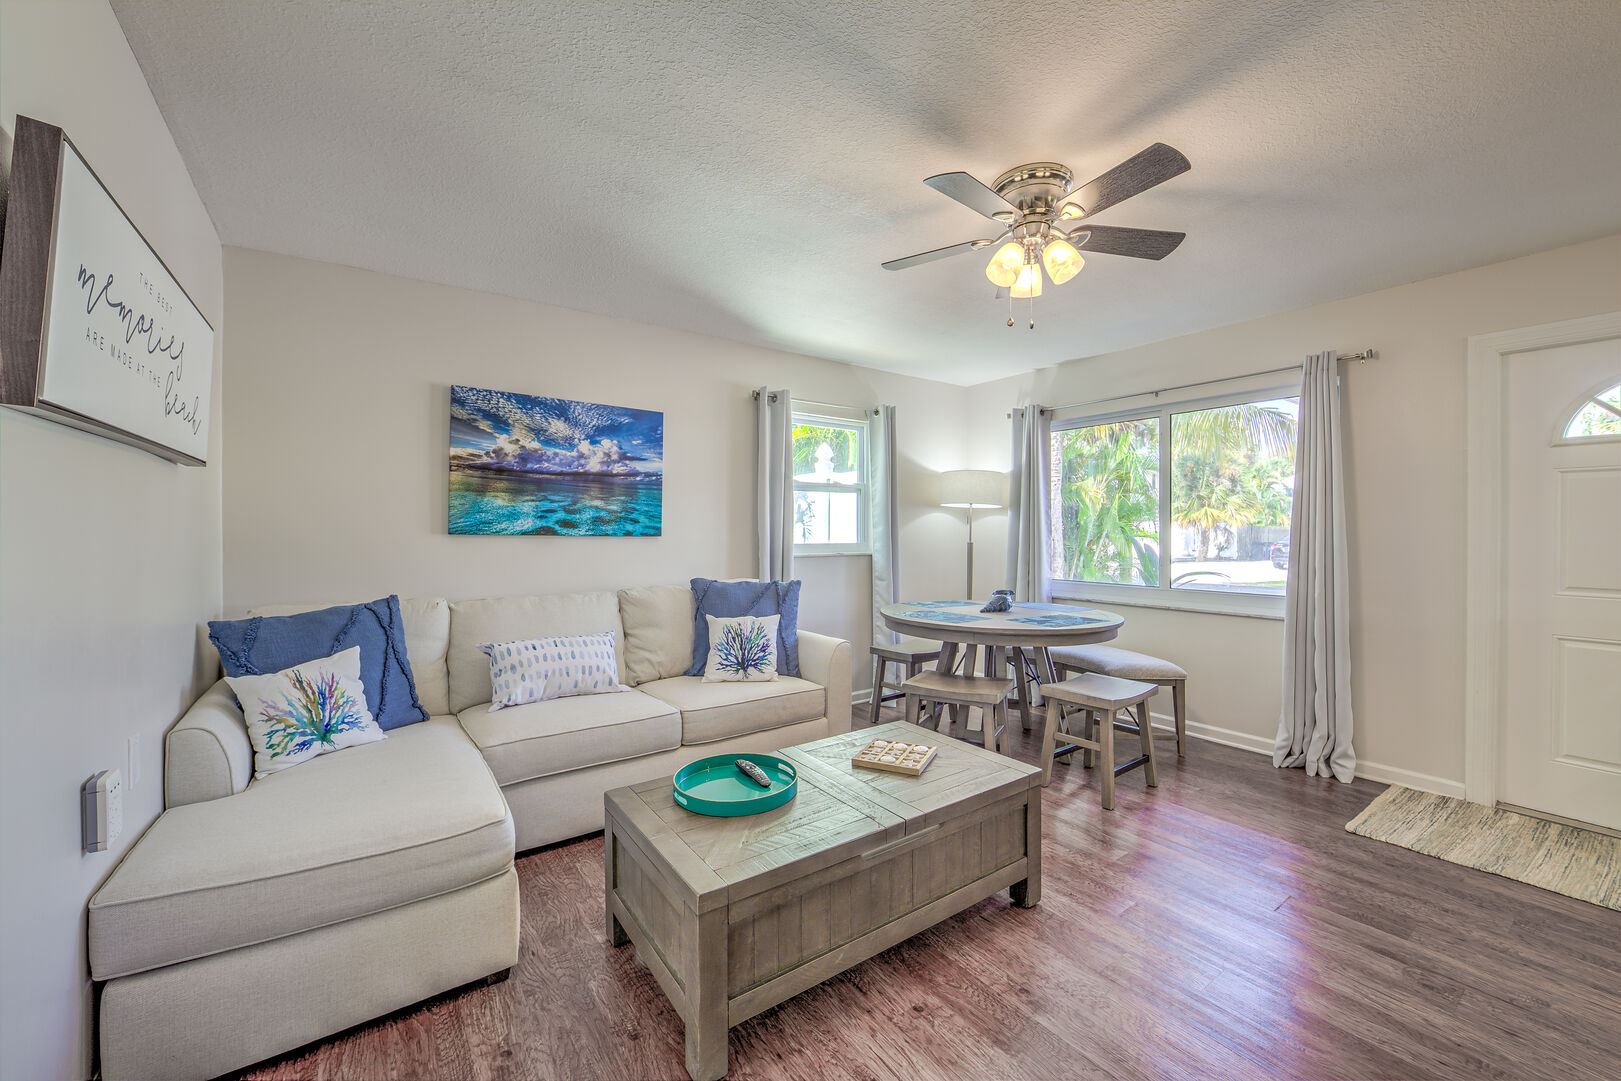 Living room in the Vacation Homes in Fort Myers